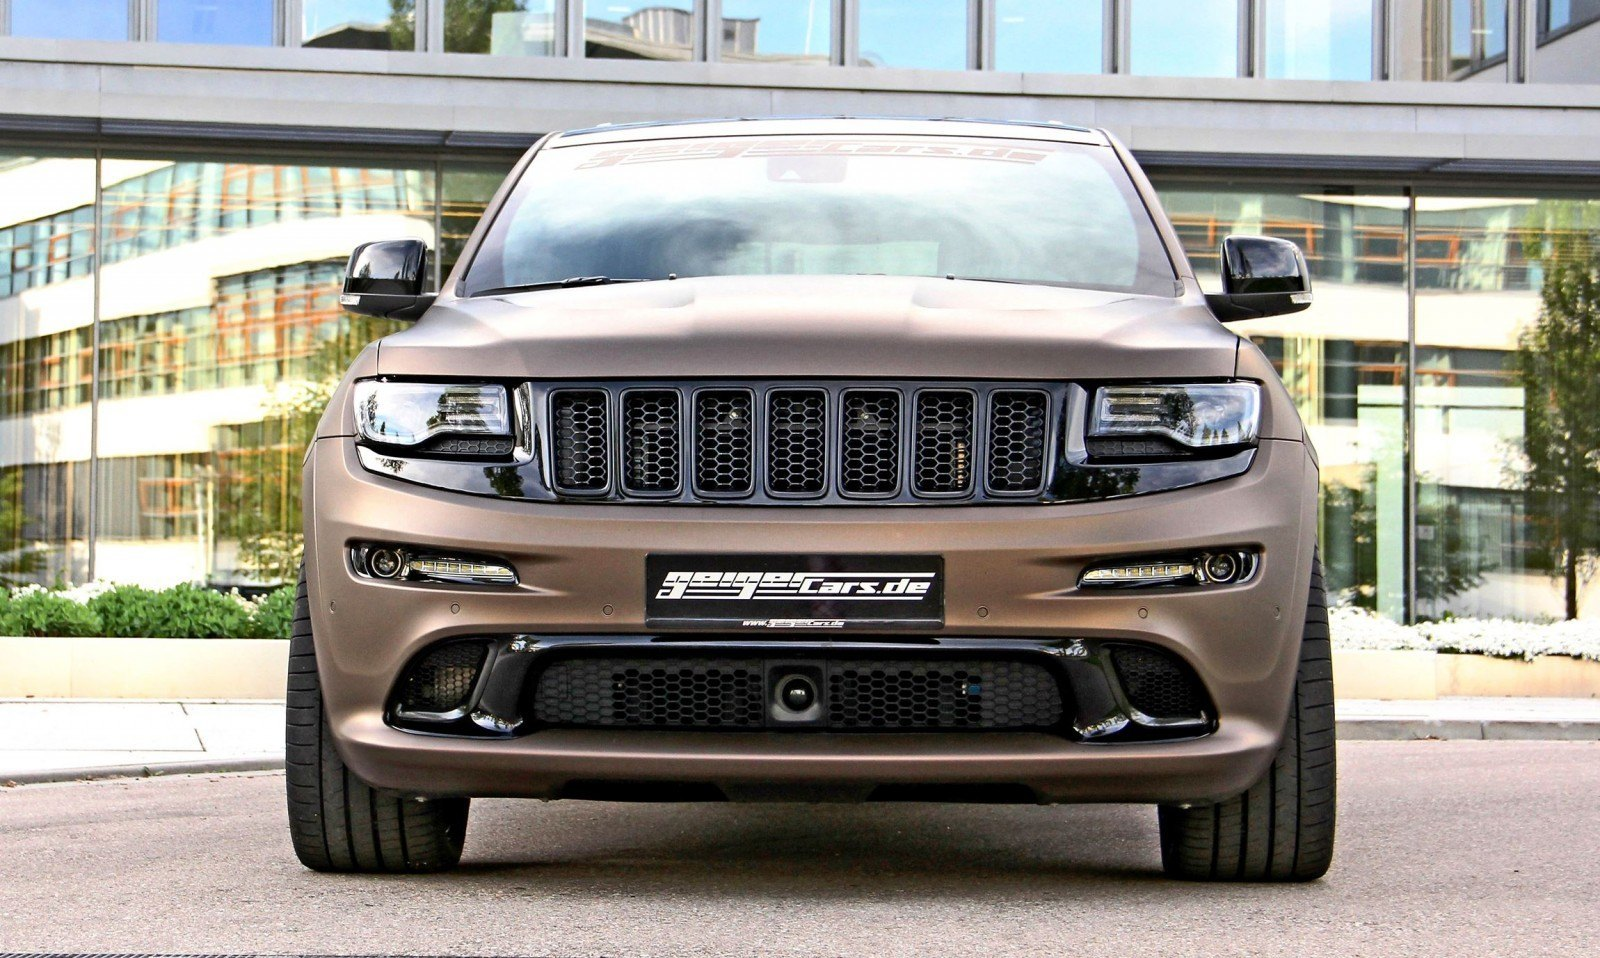 GEIGER SRT Grand Cherokee 13